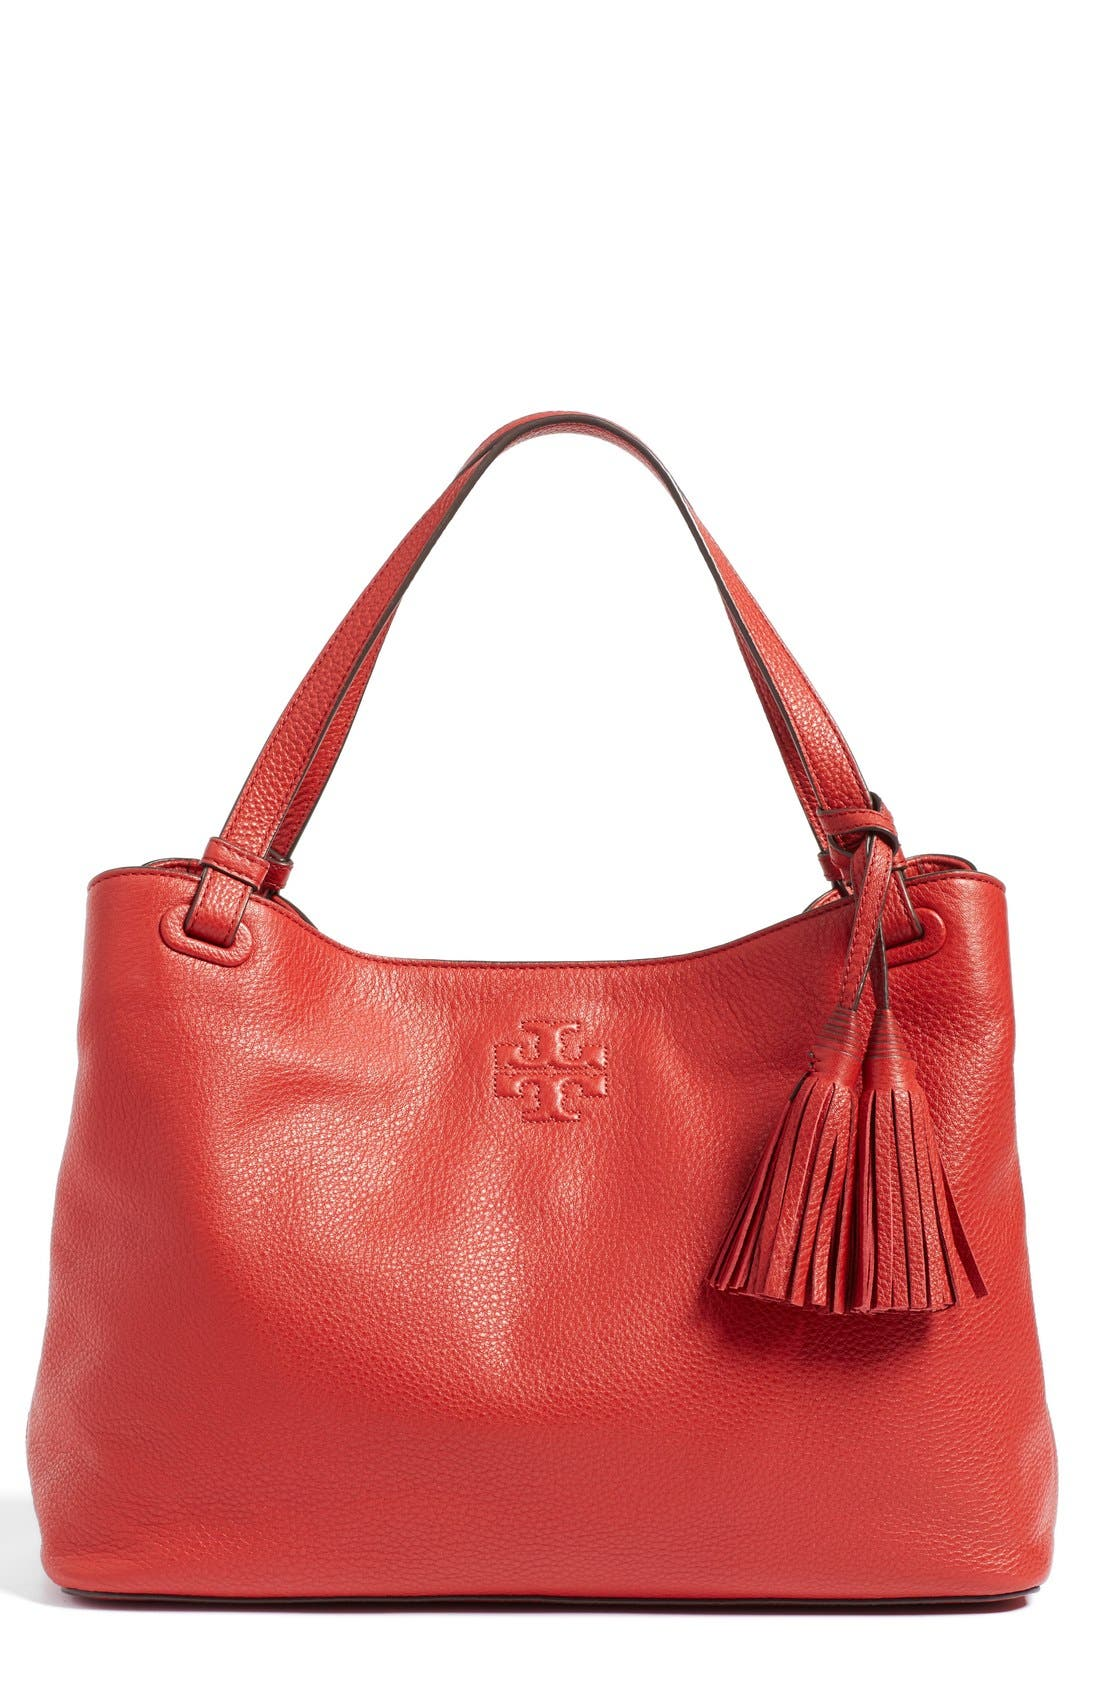 Alternate Image 1 Selected - Tory Burch 'Thea' Tassel Leather Tote